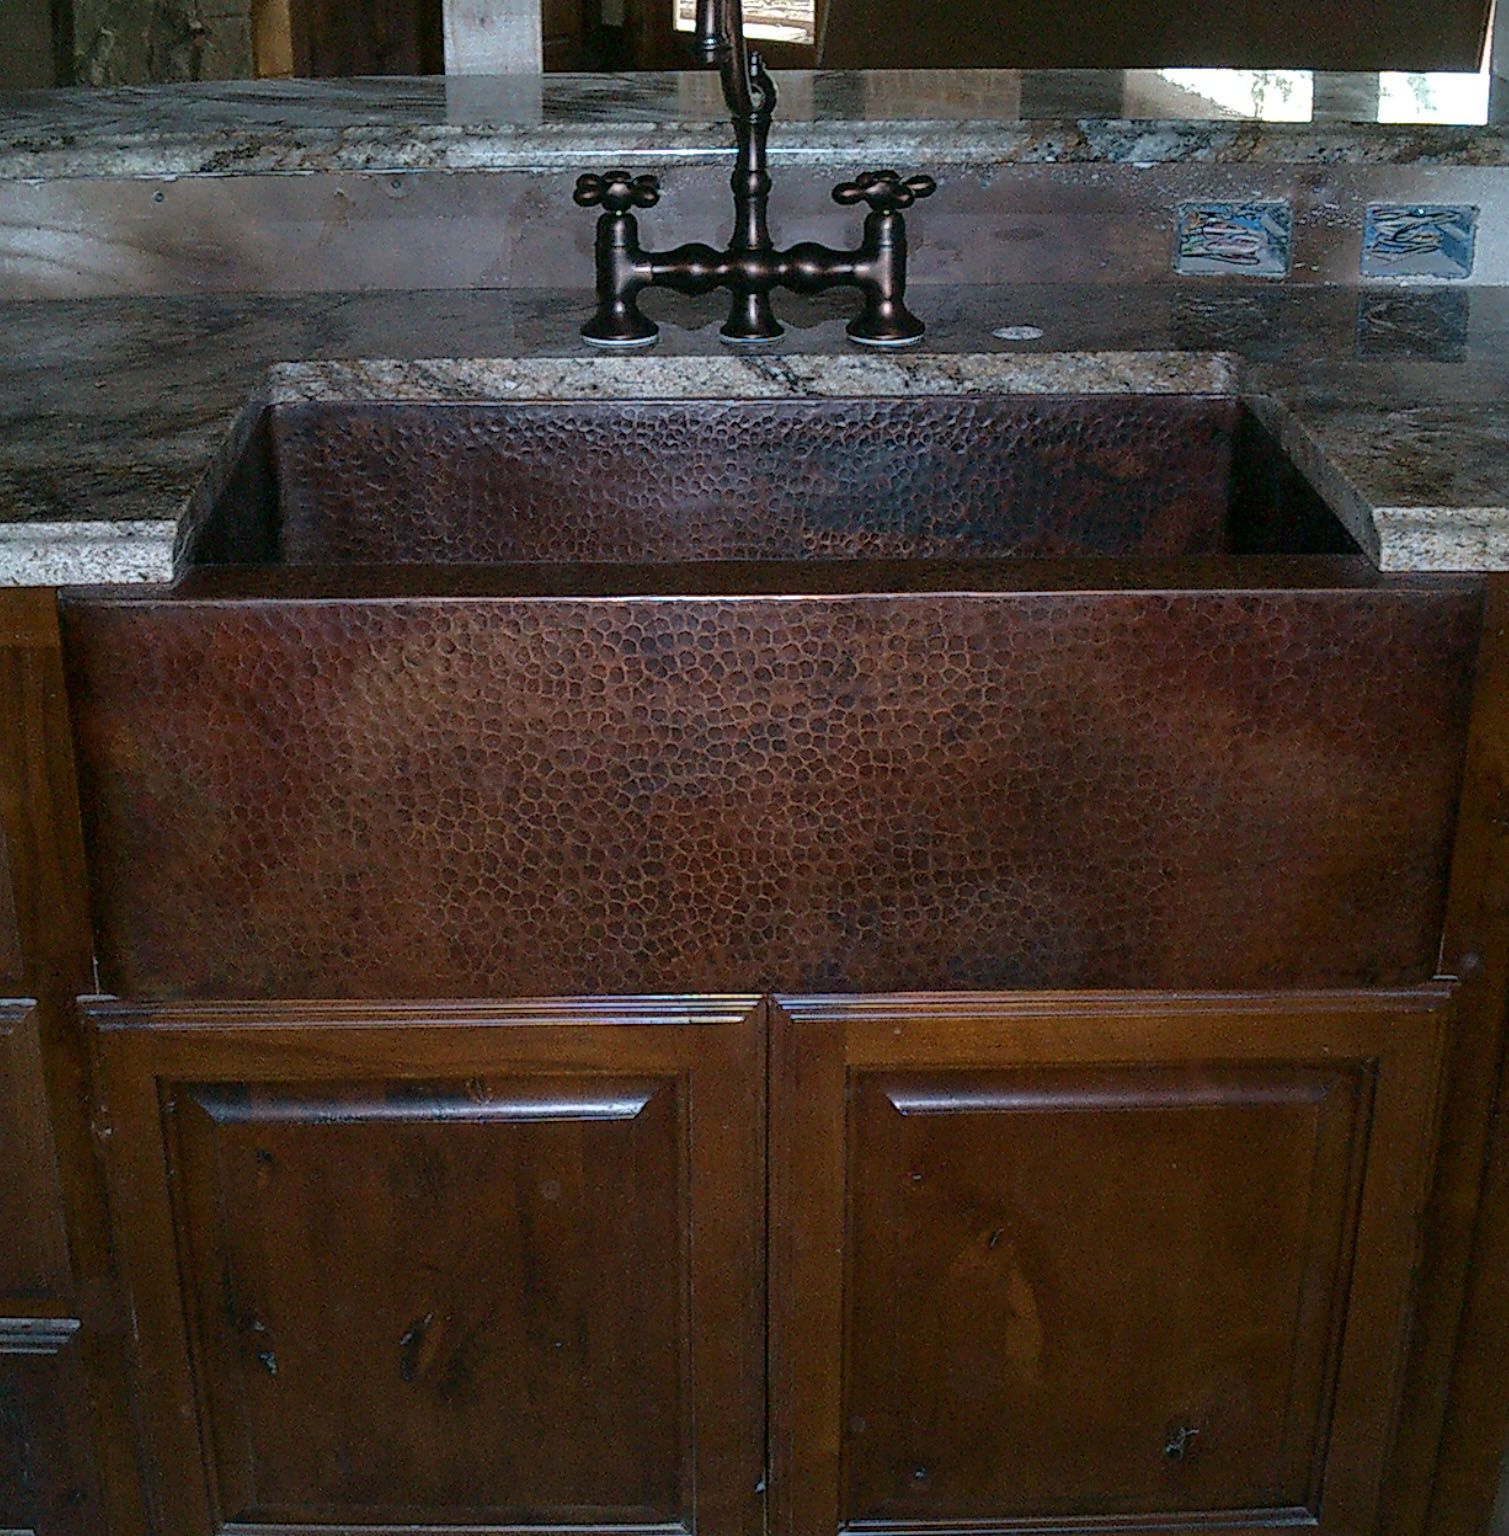 Jim Gu0027s Hammered Copper Farmhouse Sink, With Wood Cabinets And Oil Rubbed  Bronze Faucet!